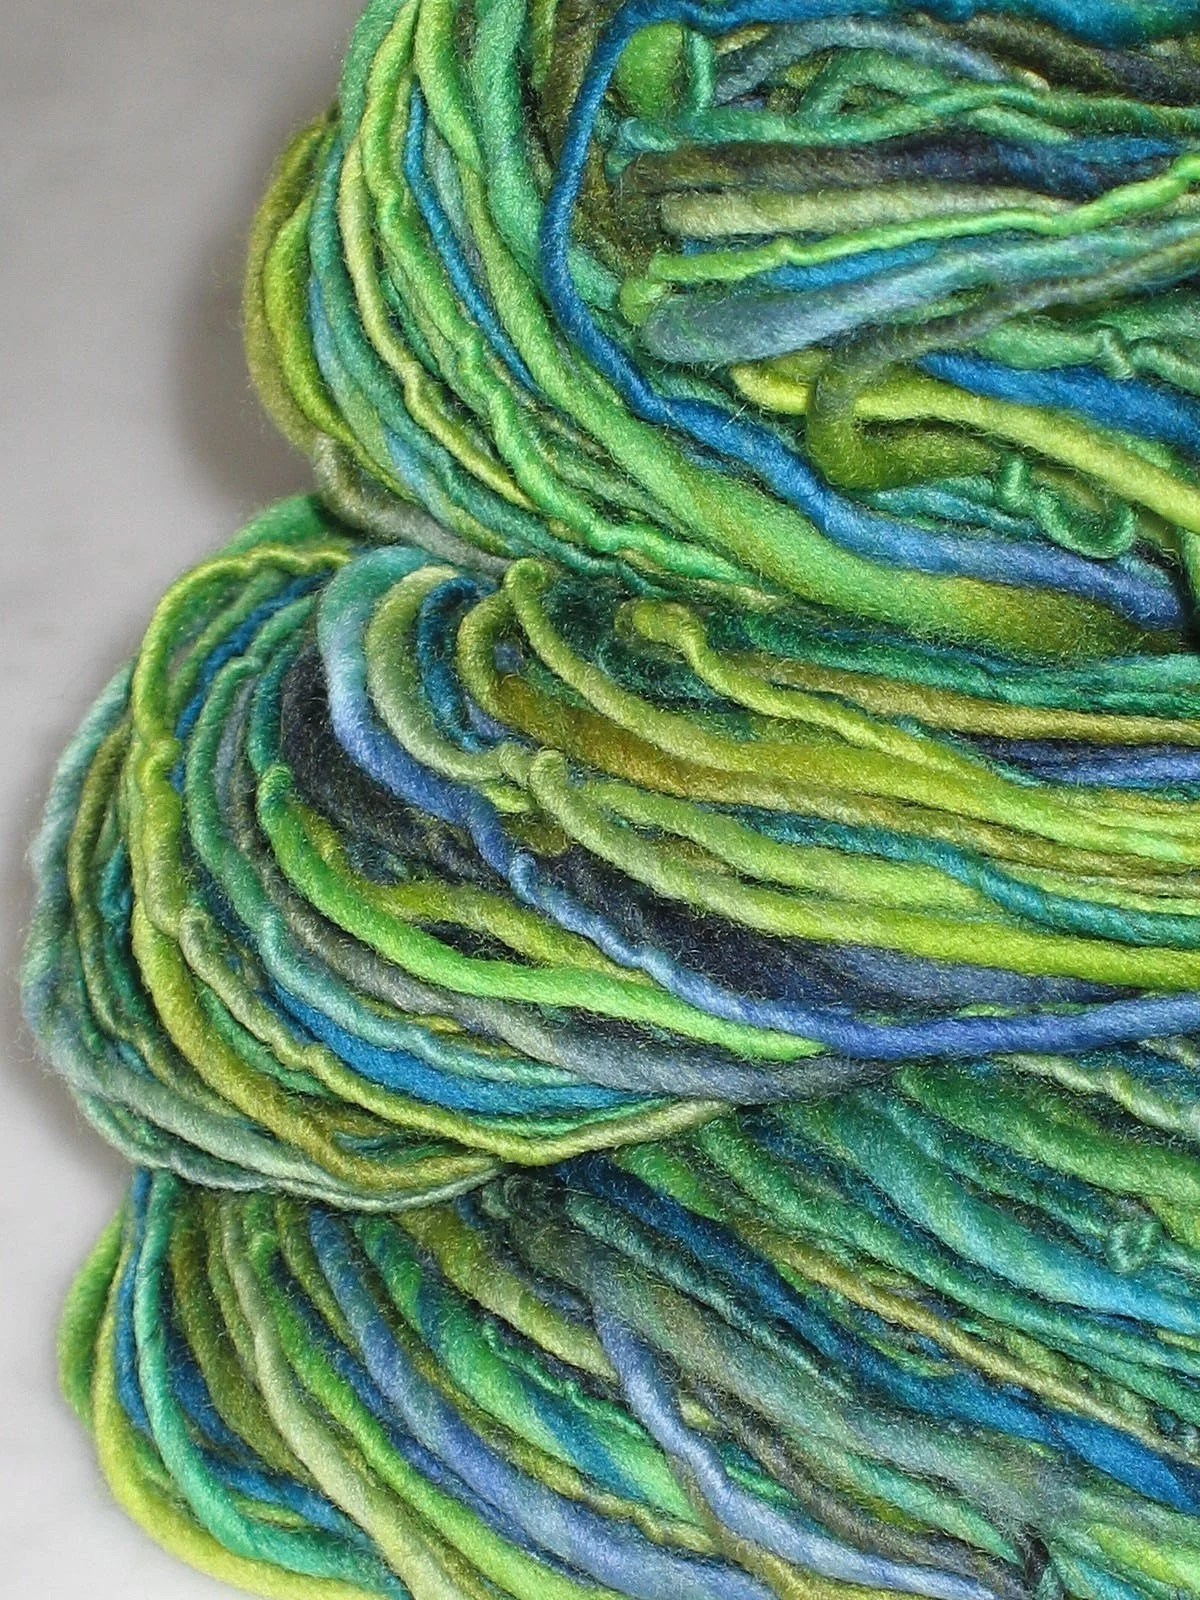 VERDI -handspun and handpainted pure merino yarn by pancake and lulu